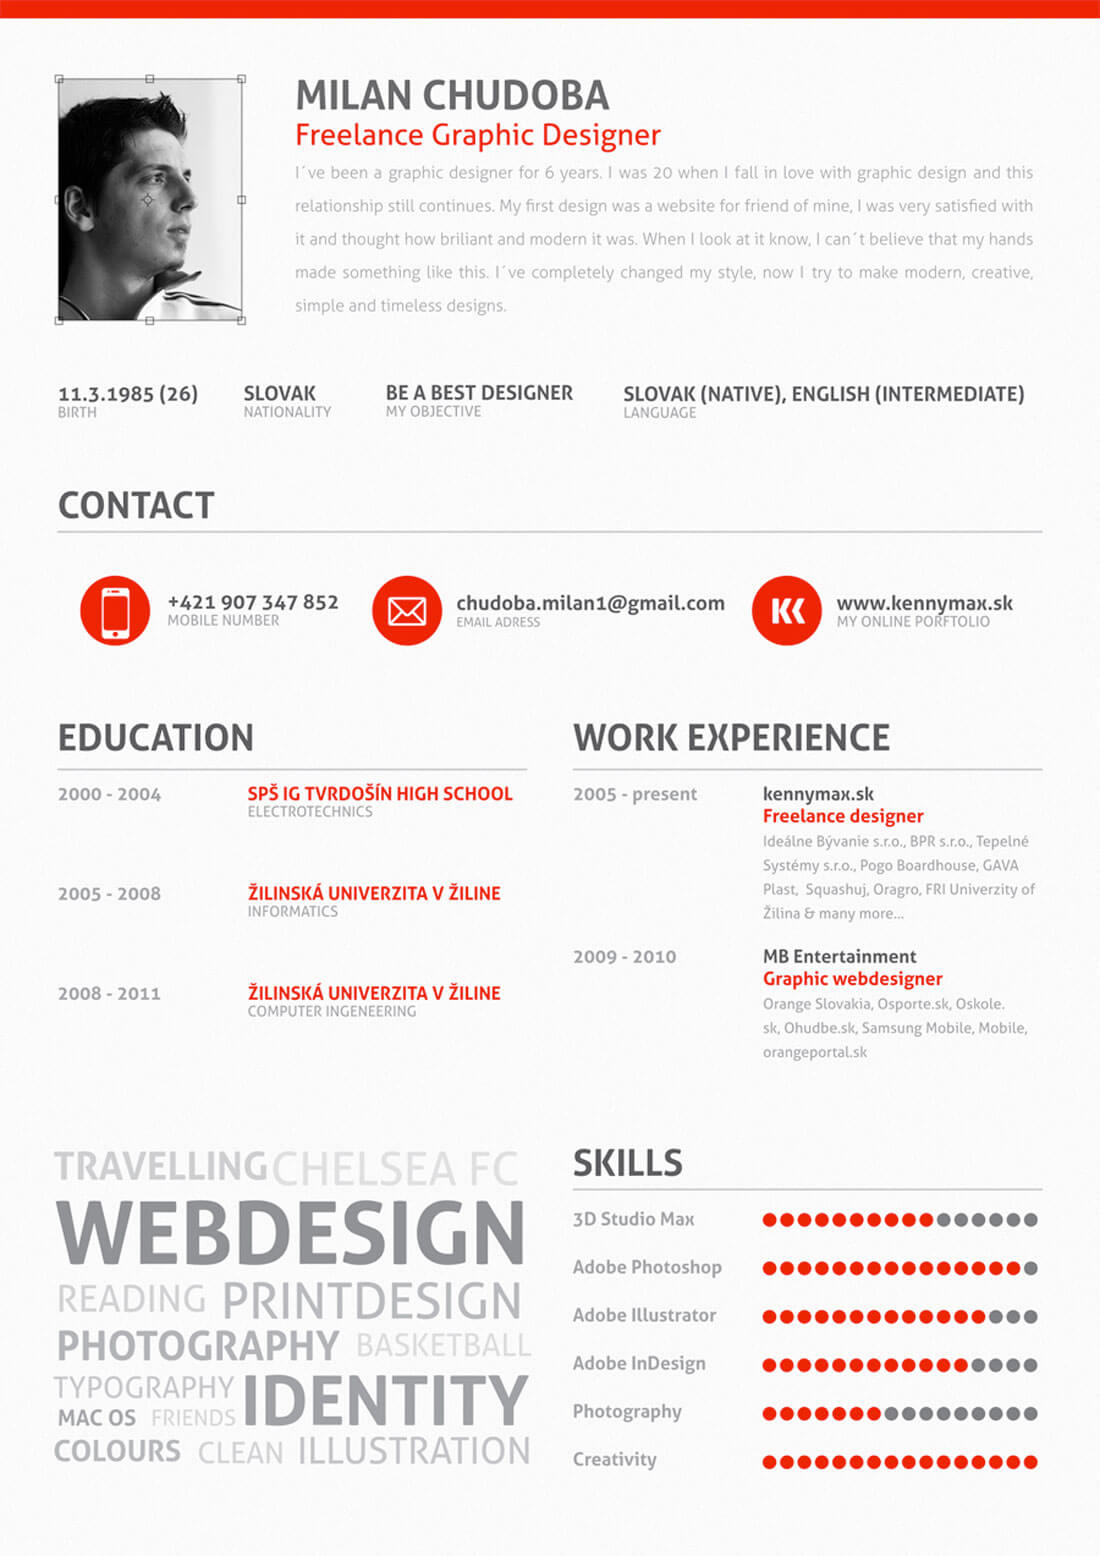 10 Skills Every Designer Needs on Their Resume | Design Shack